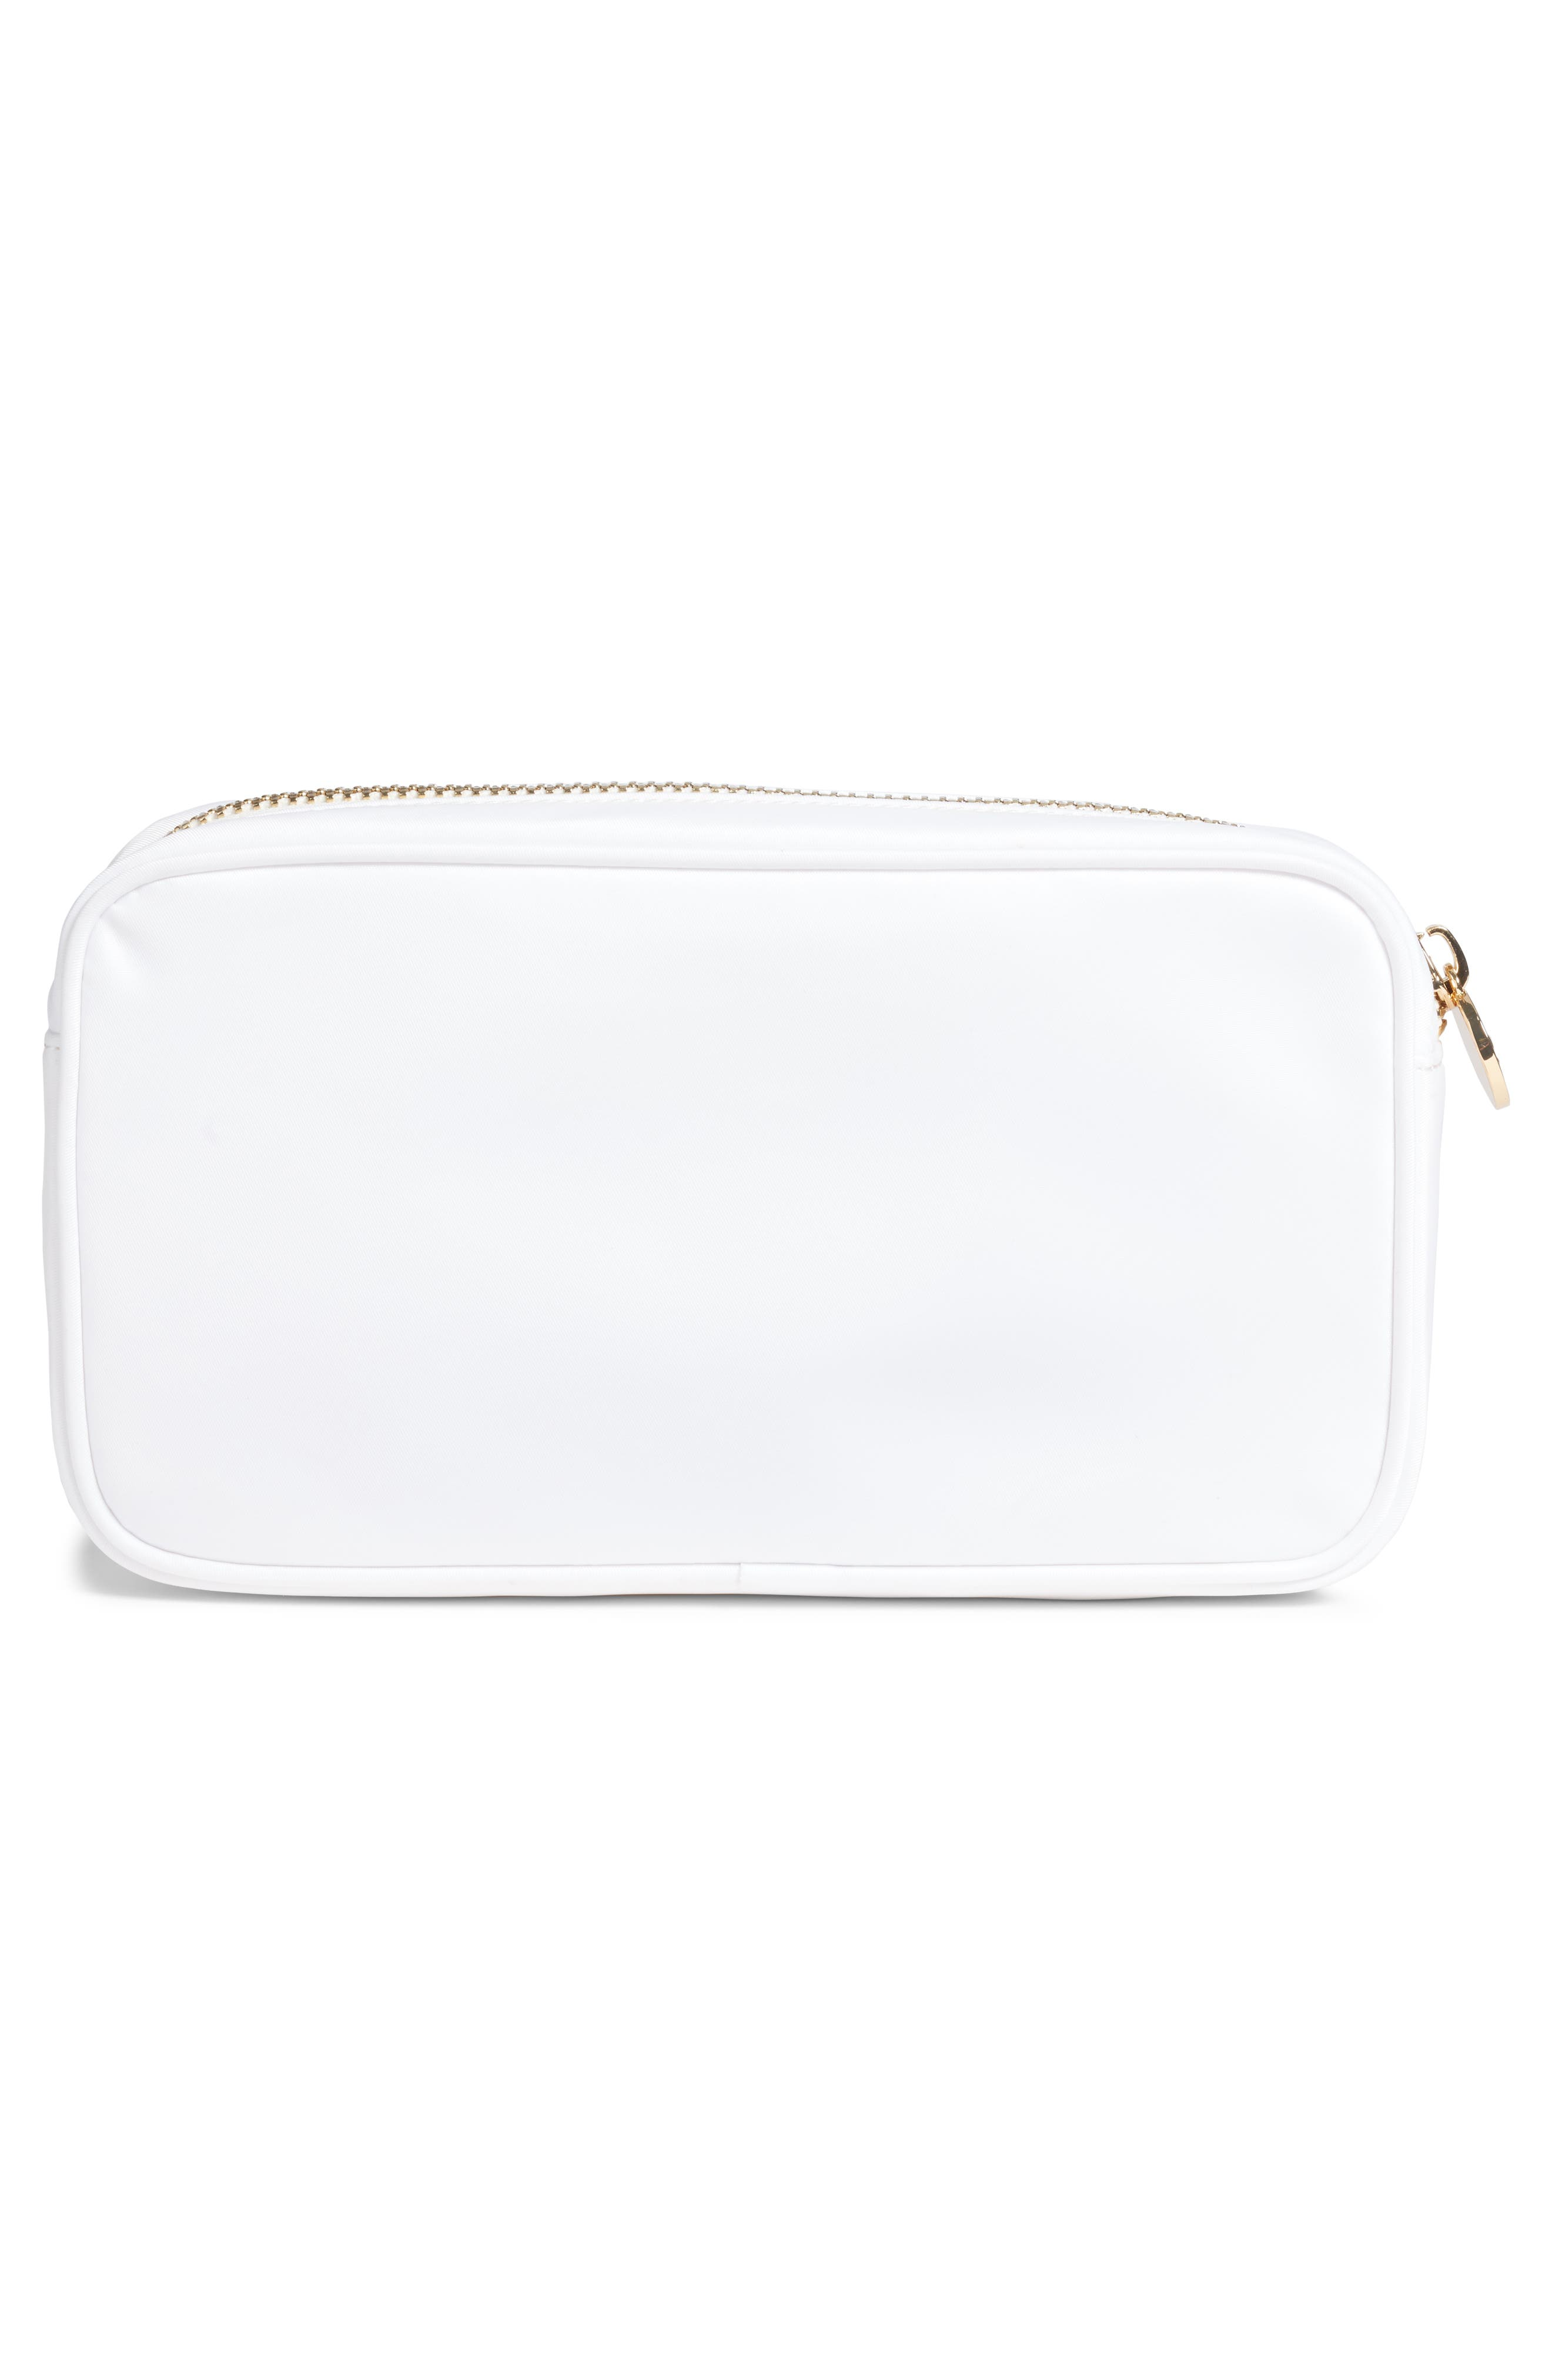 Small Pouch,                             Alternate thumbnail 2, color,                             WHITE